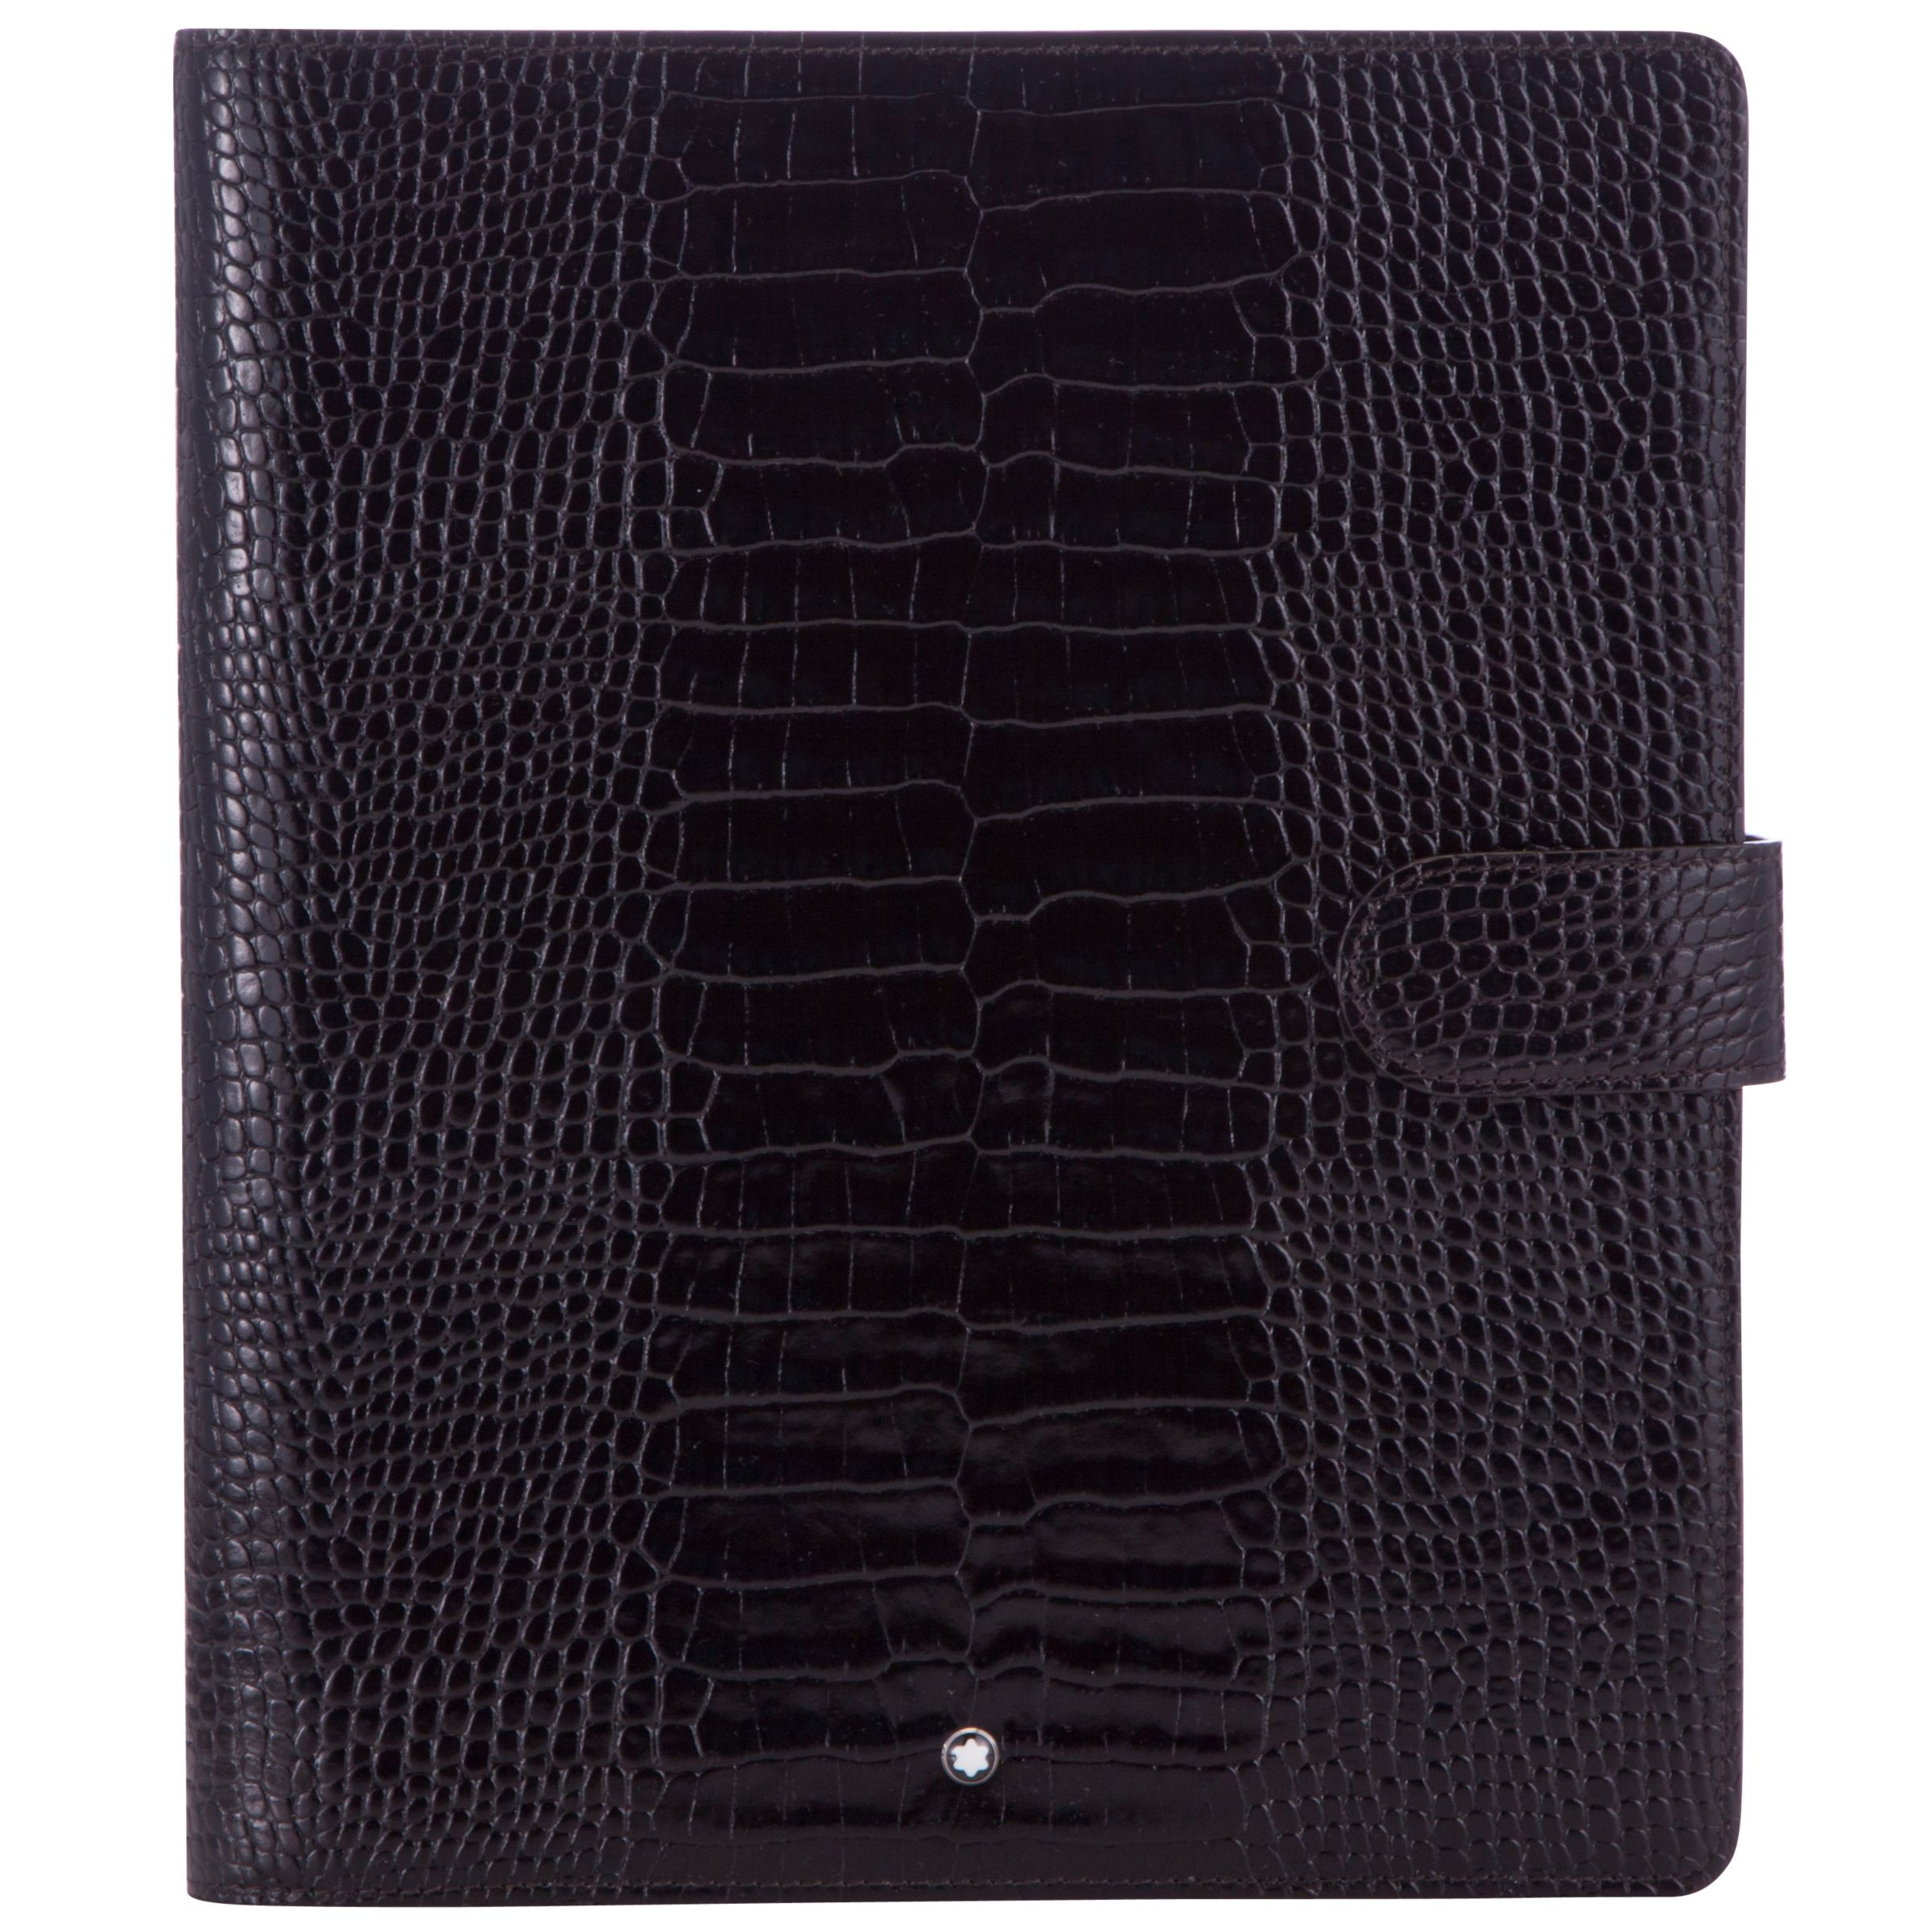 2a6971c7675e Montblanc Meisterstück Selection Cover for iPad 3, Mocha at John ...